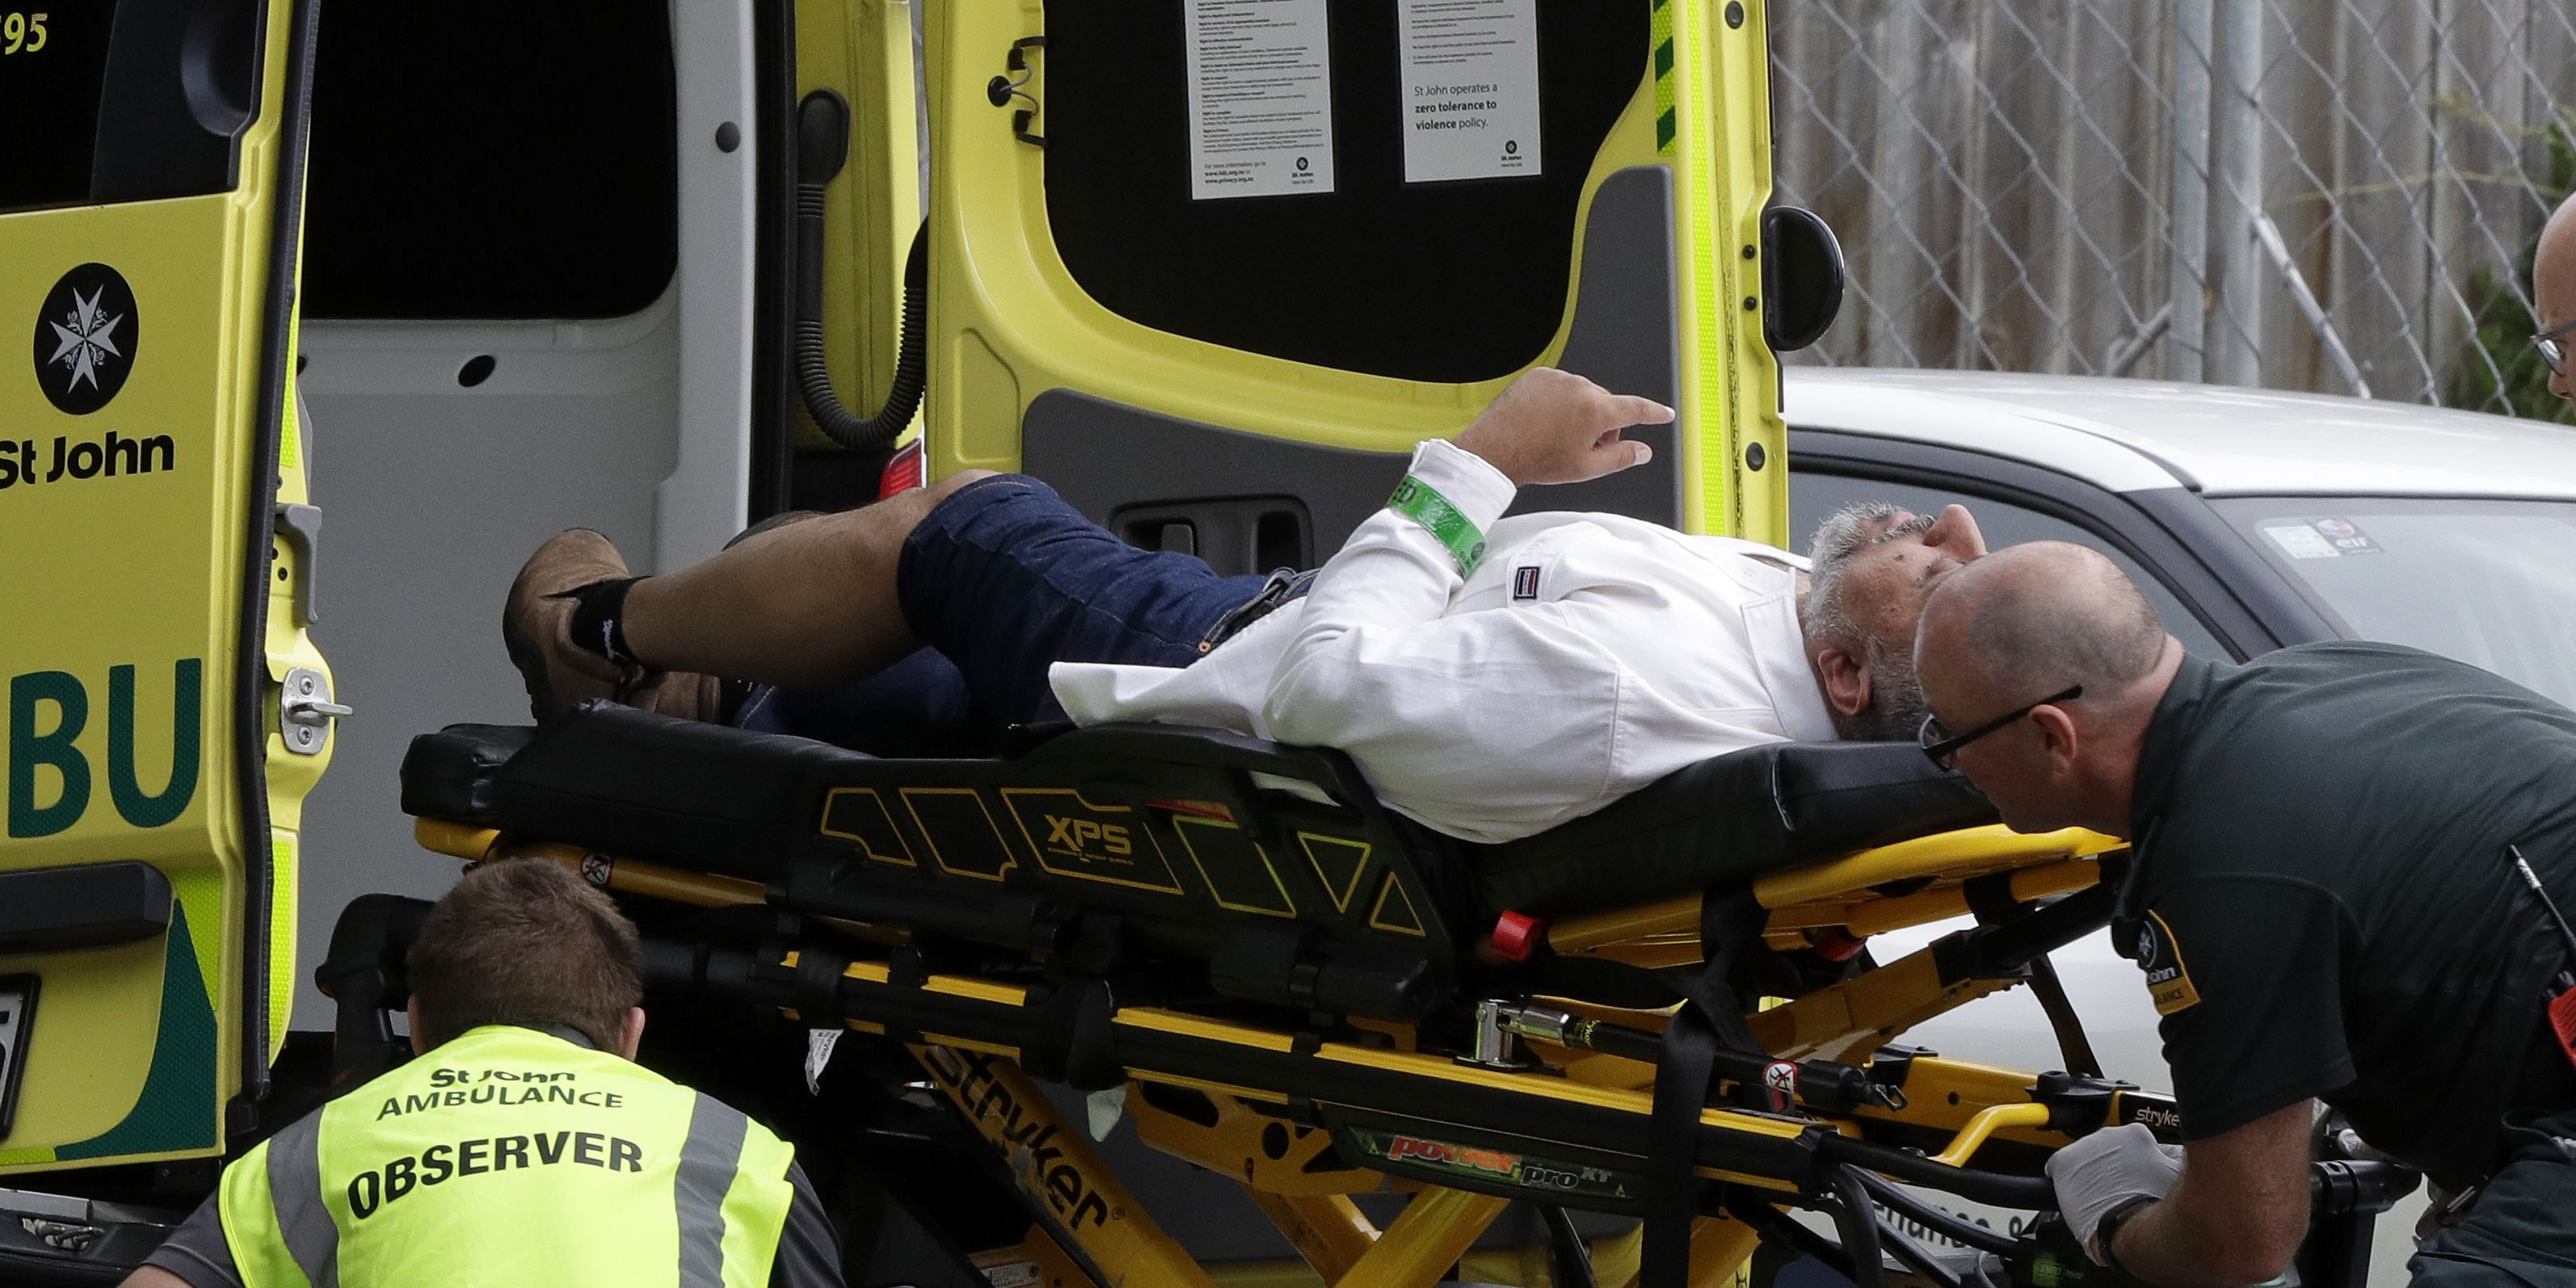 'One of New Zealand's darkest days': 49 killed in terrorist attack on mosques